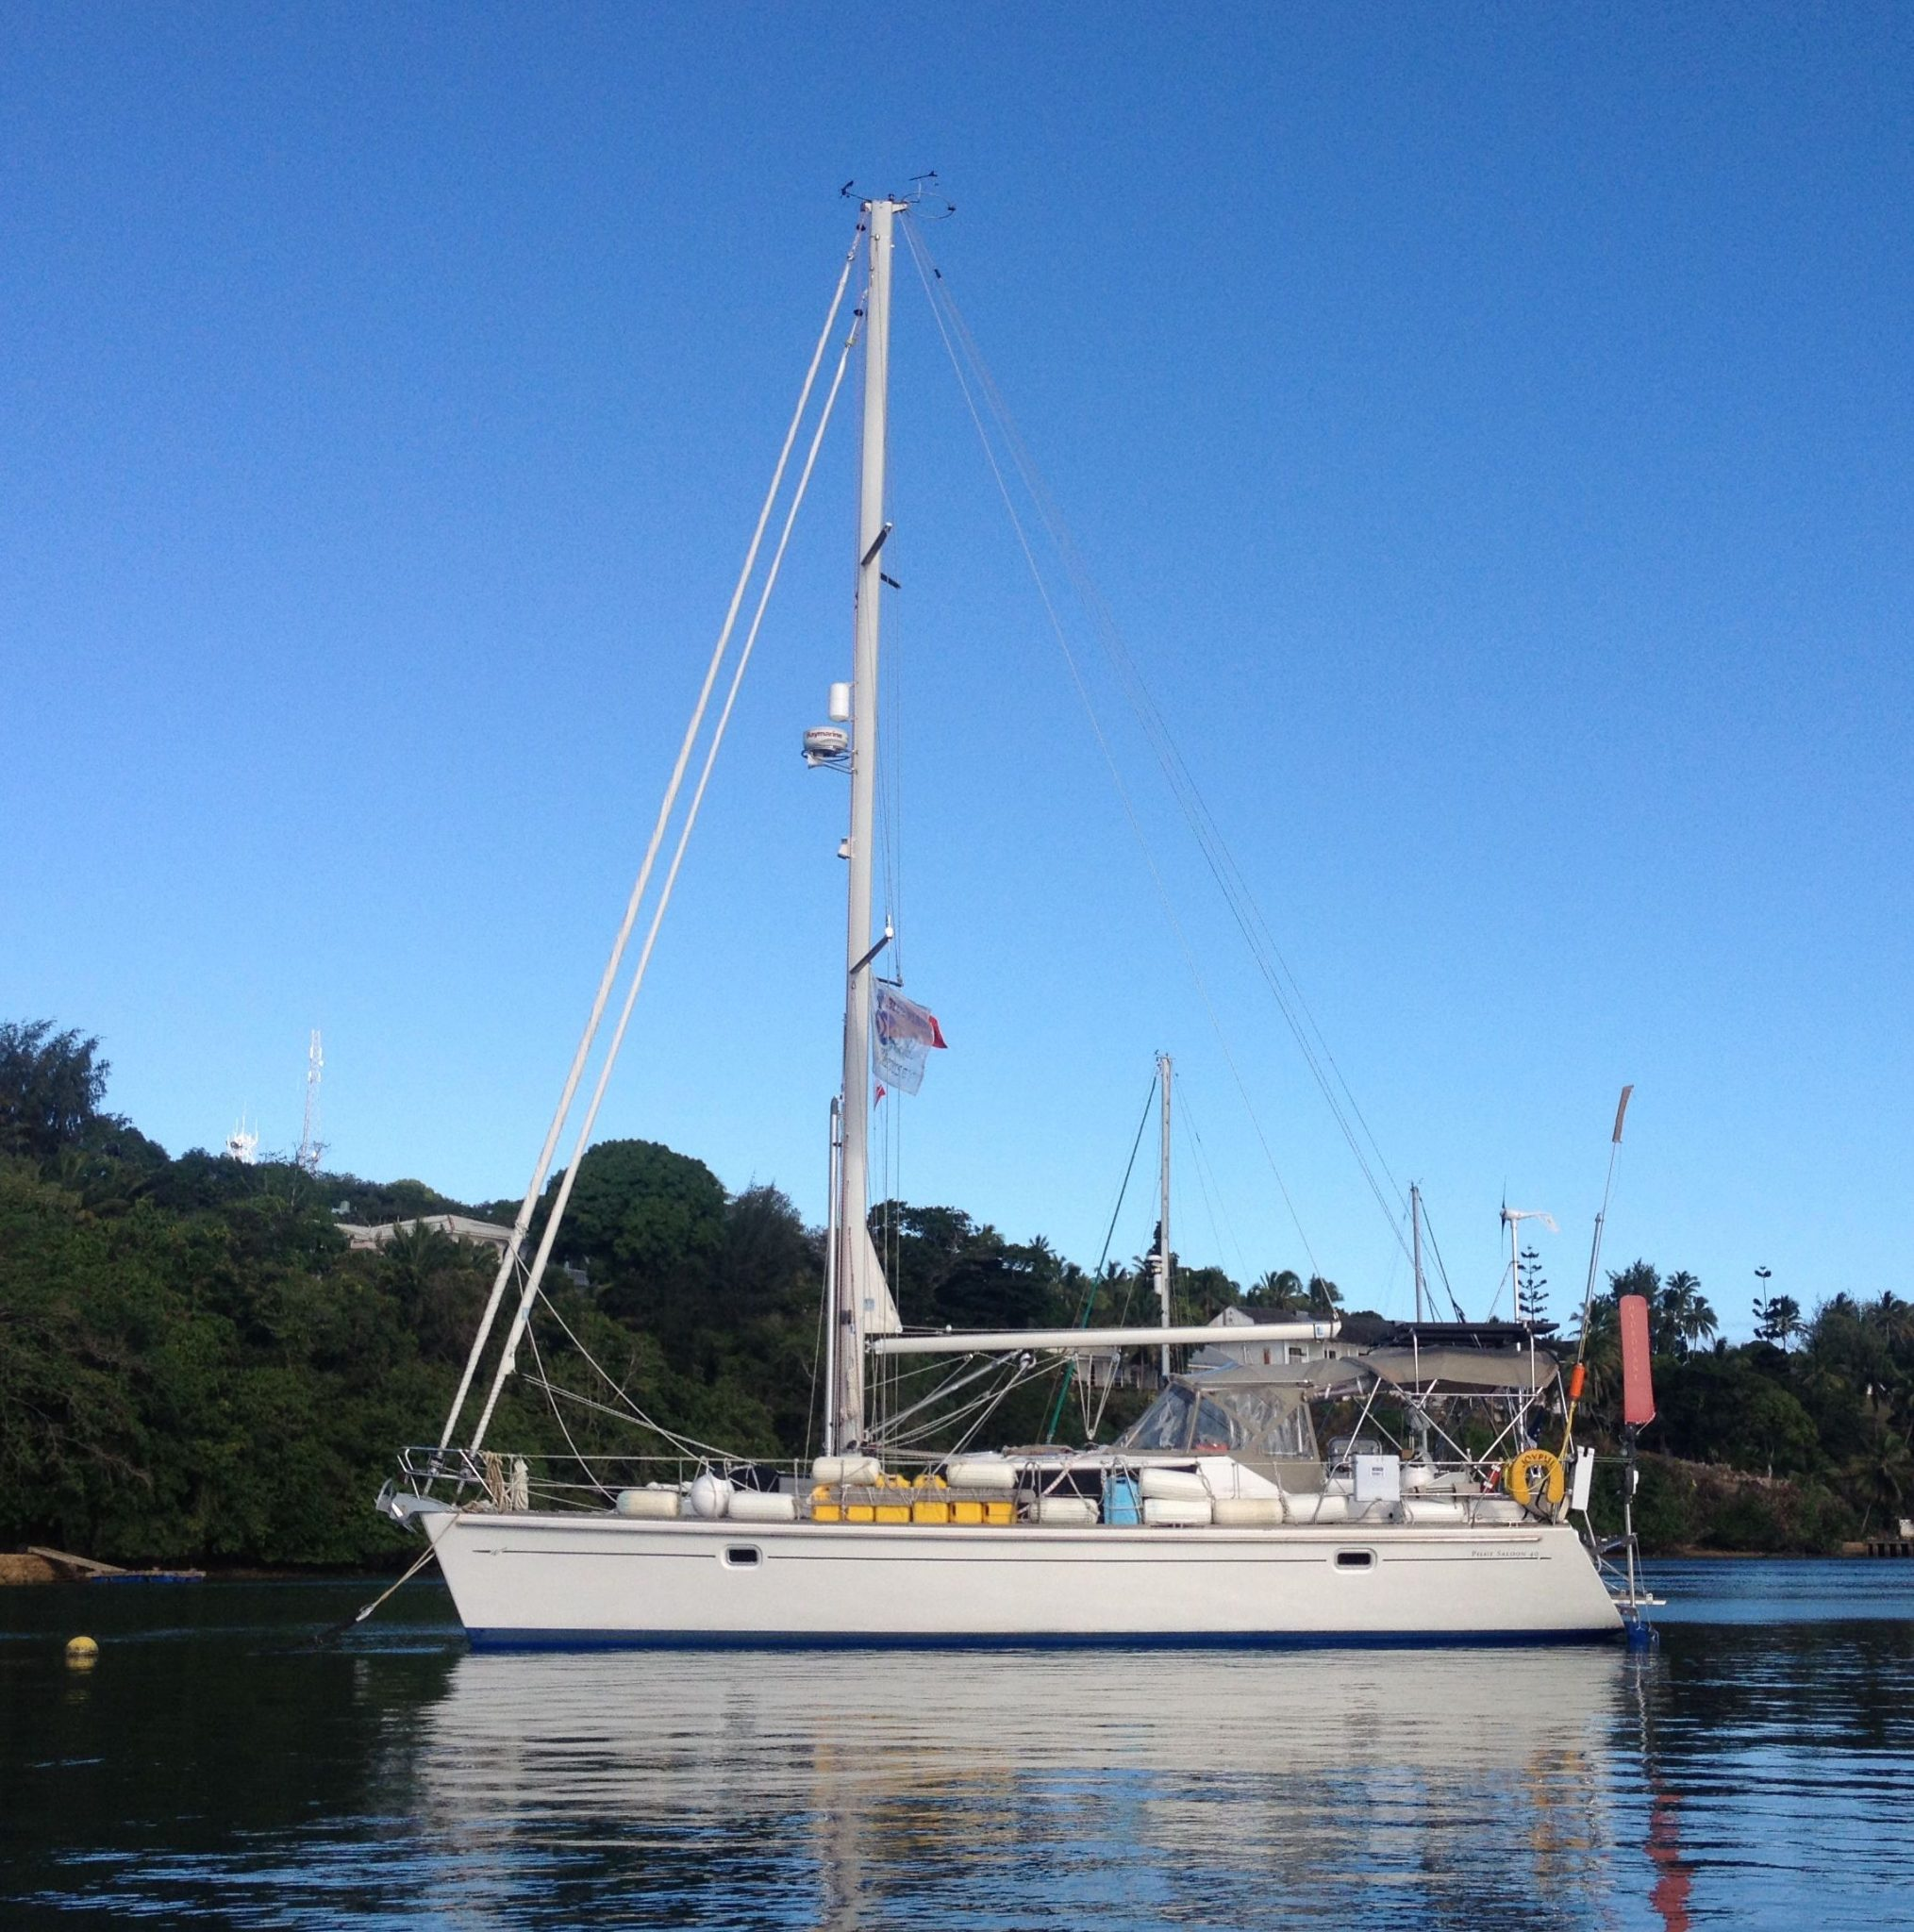 21. Joyful at her mooring in Vava'u, Tonga